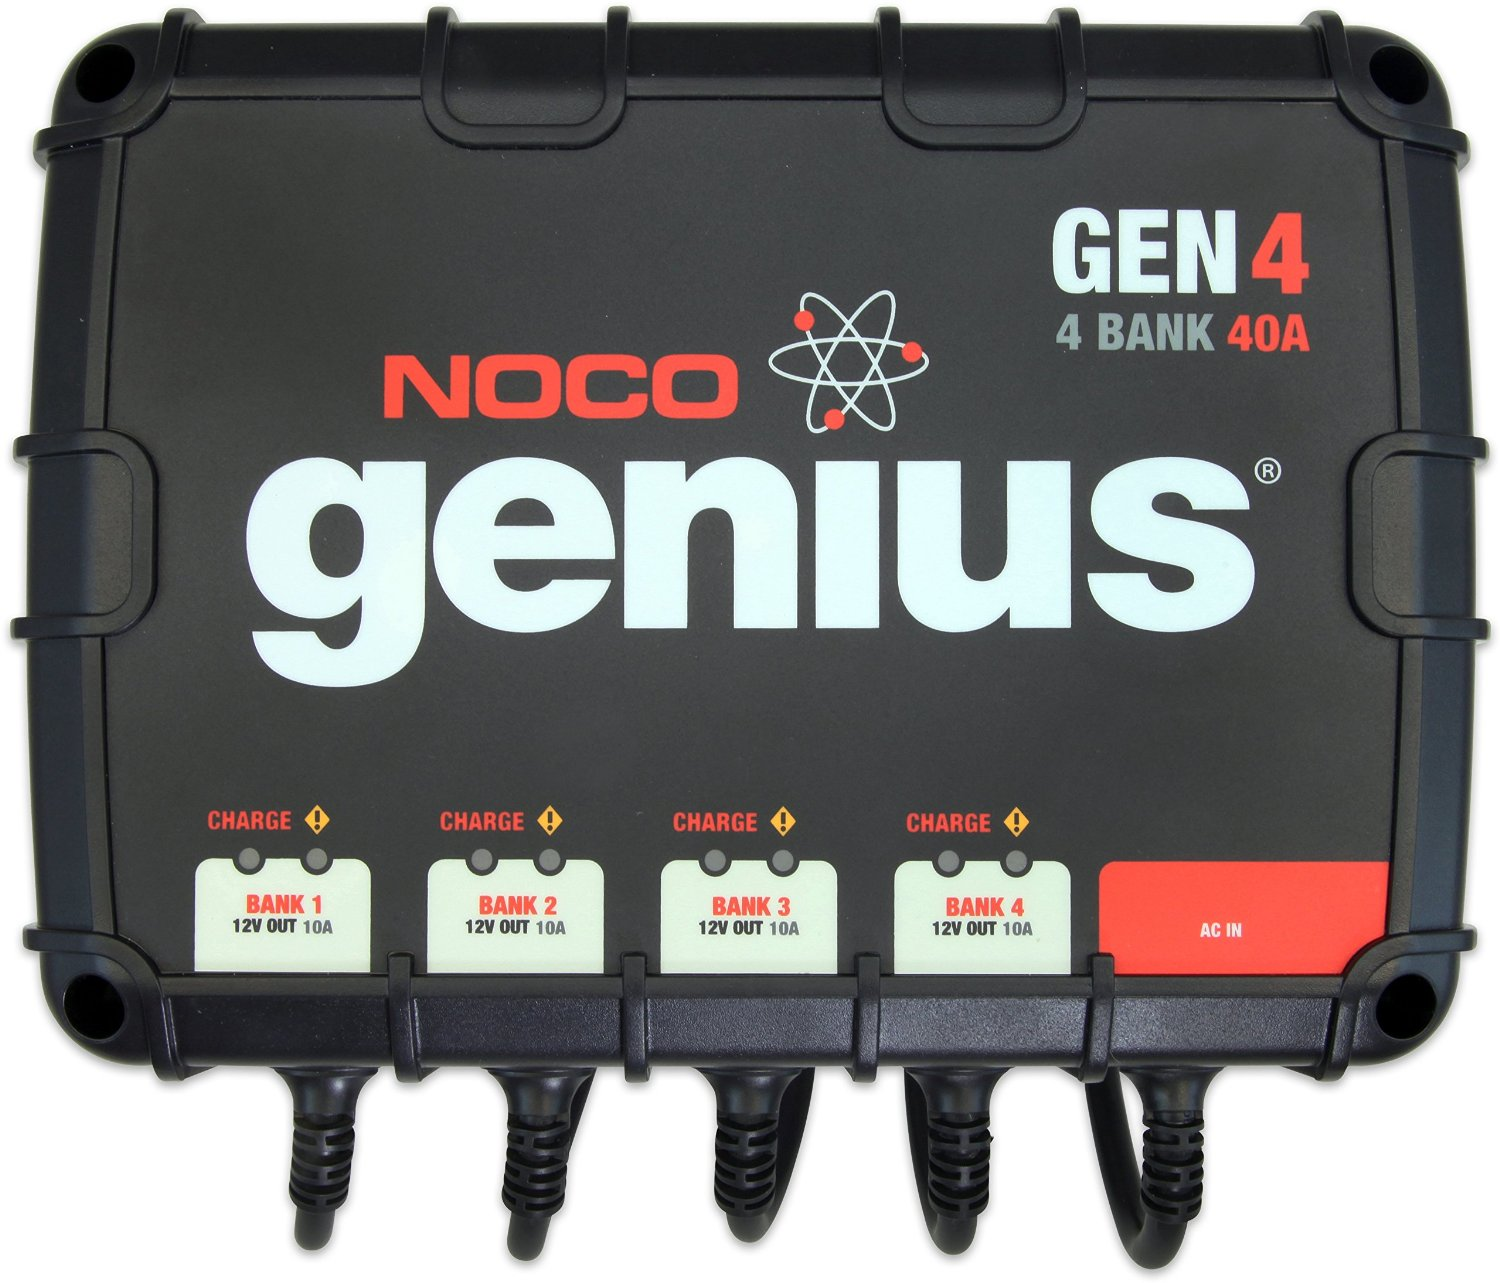 NOCO GENIUS 4 BANK 40AMP ONBOARD CHARGER